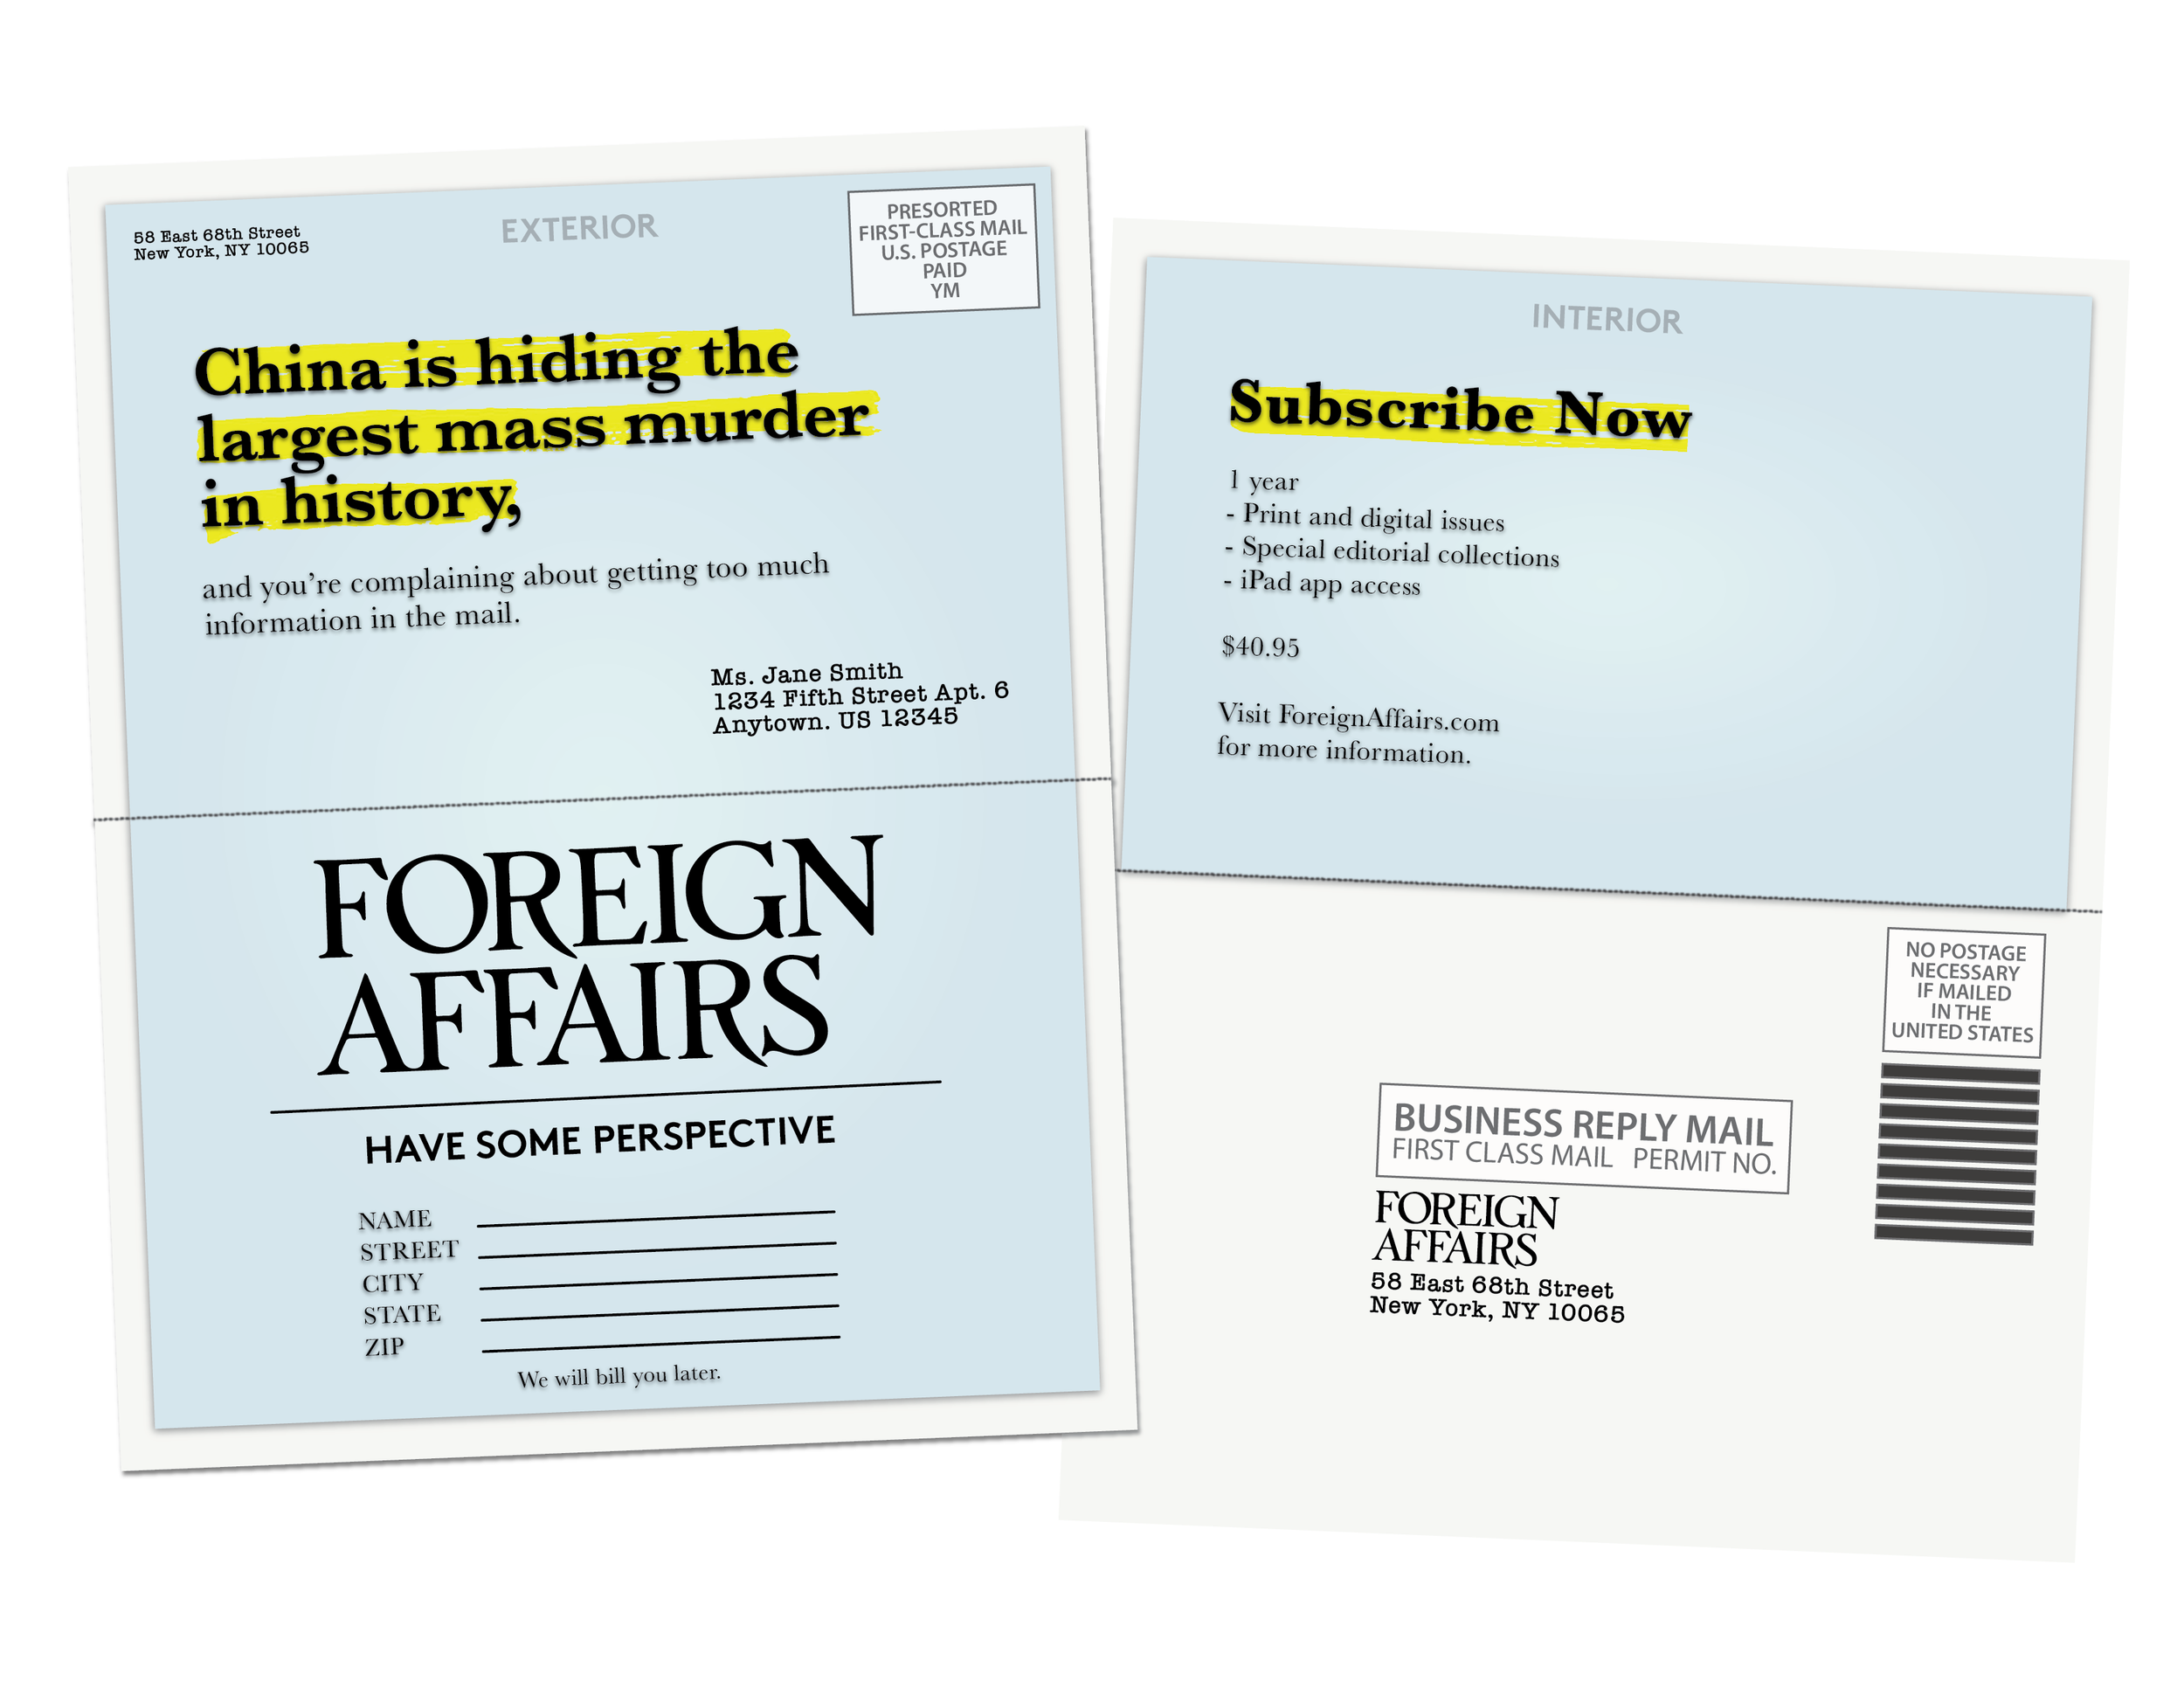 Foreign Affairs Direct Mail.png